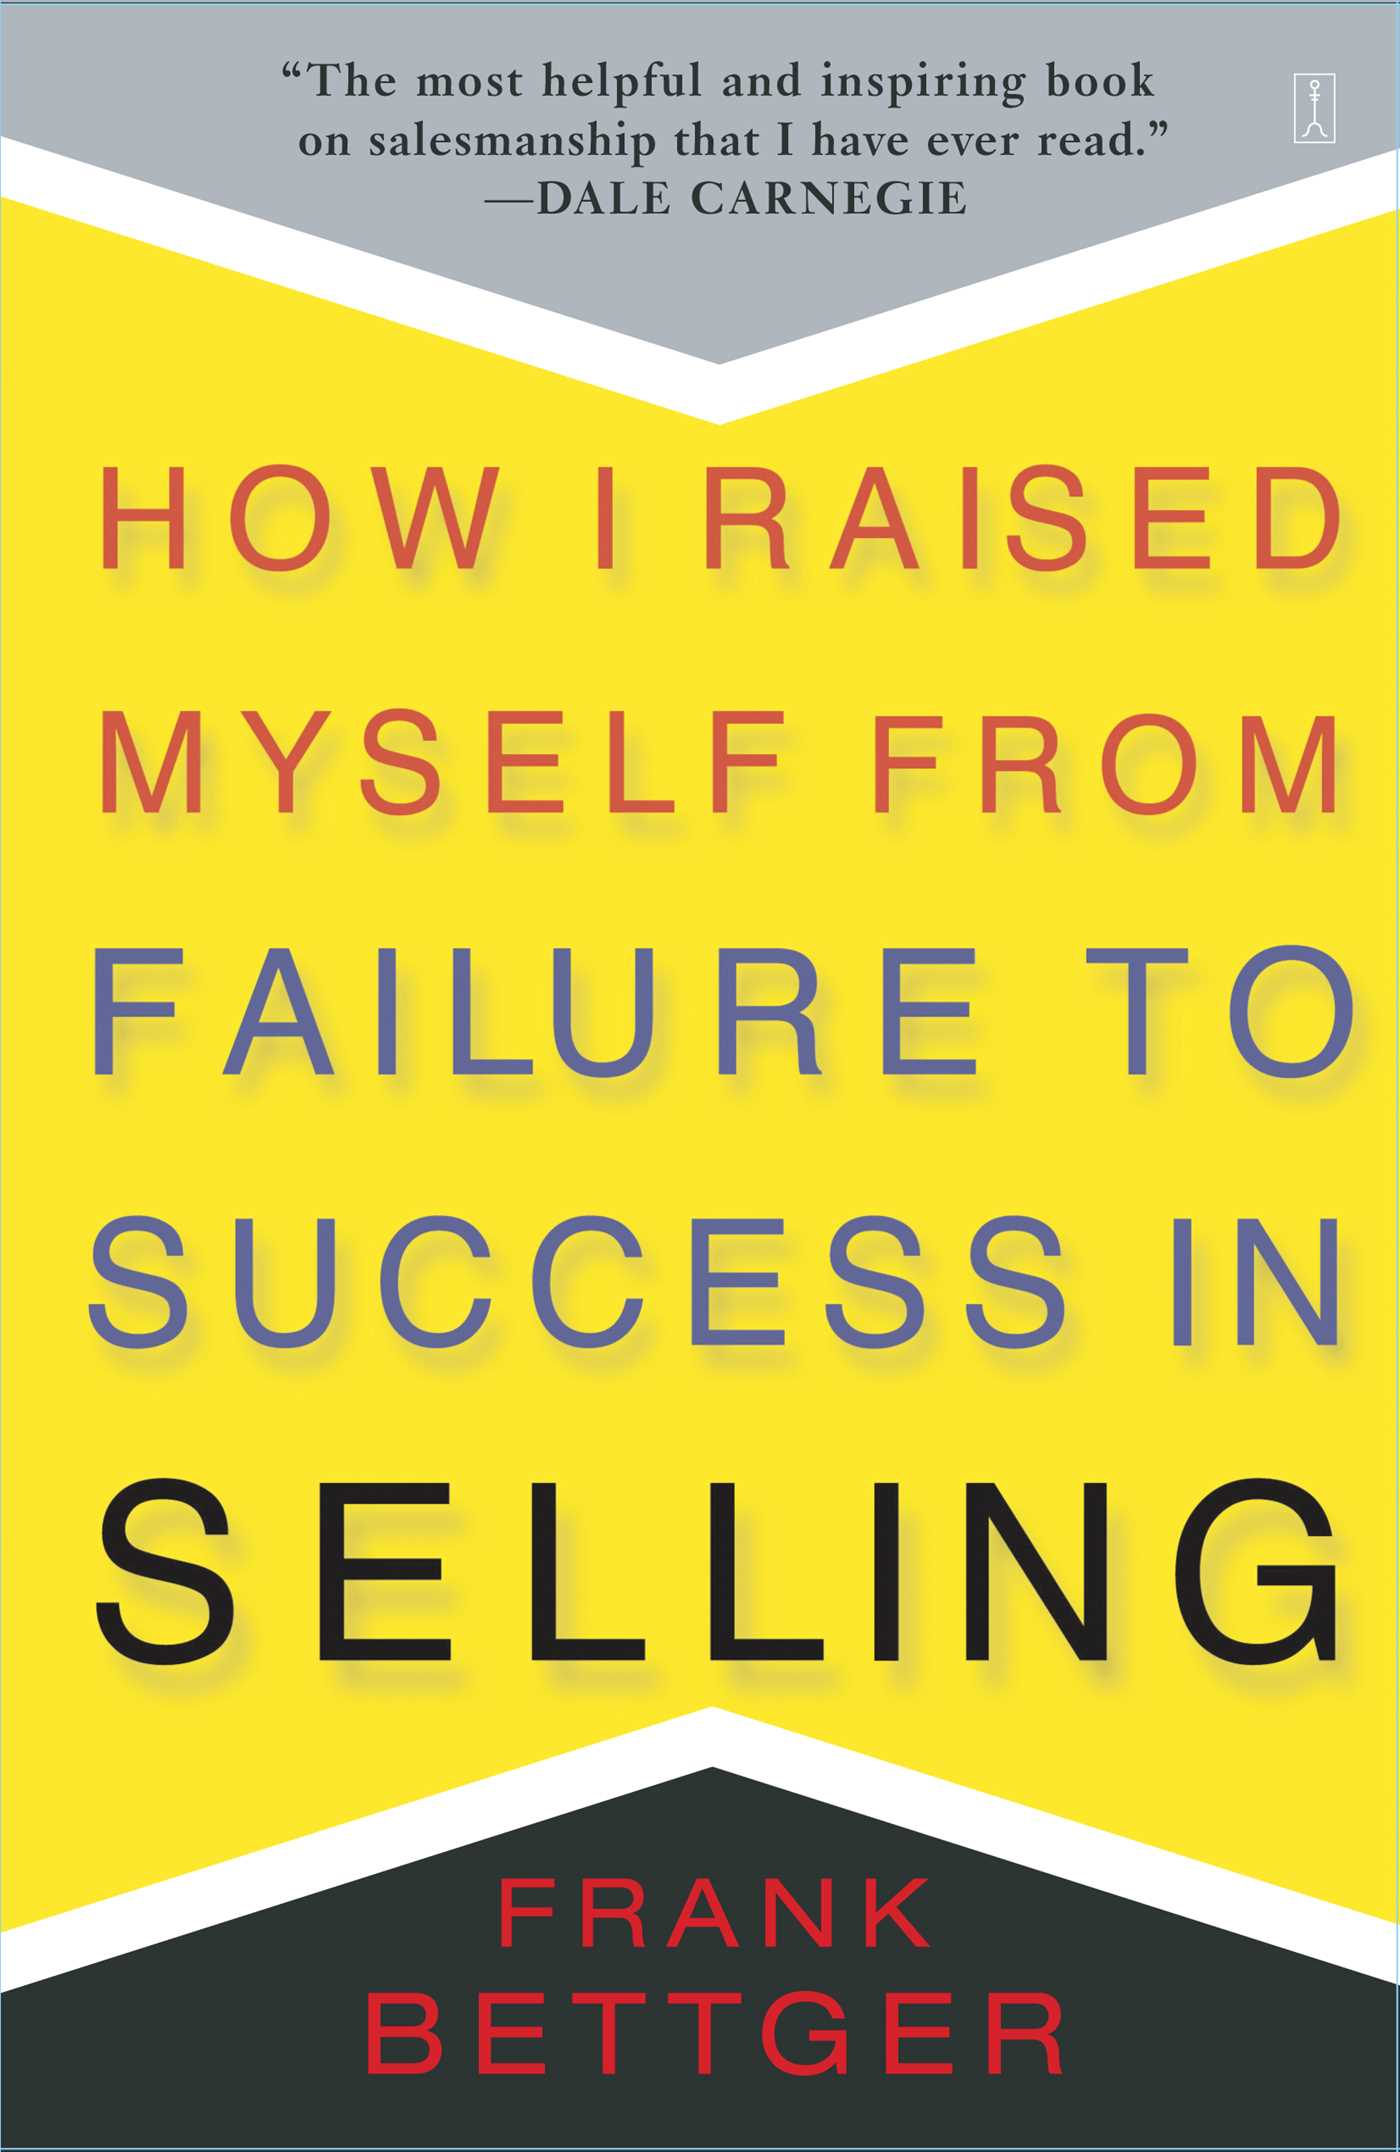 How-i-raised-myself-from-failure-9781439188637_hr